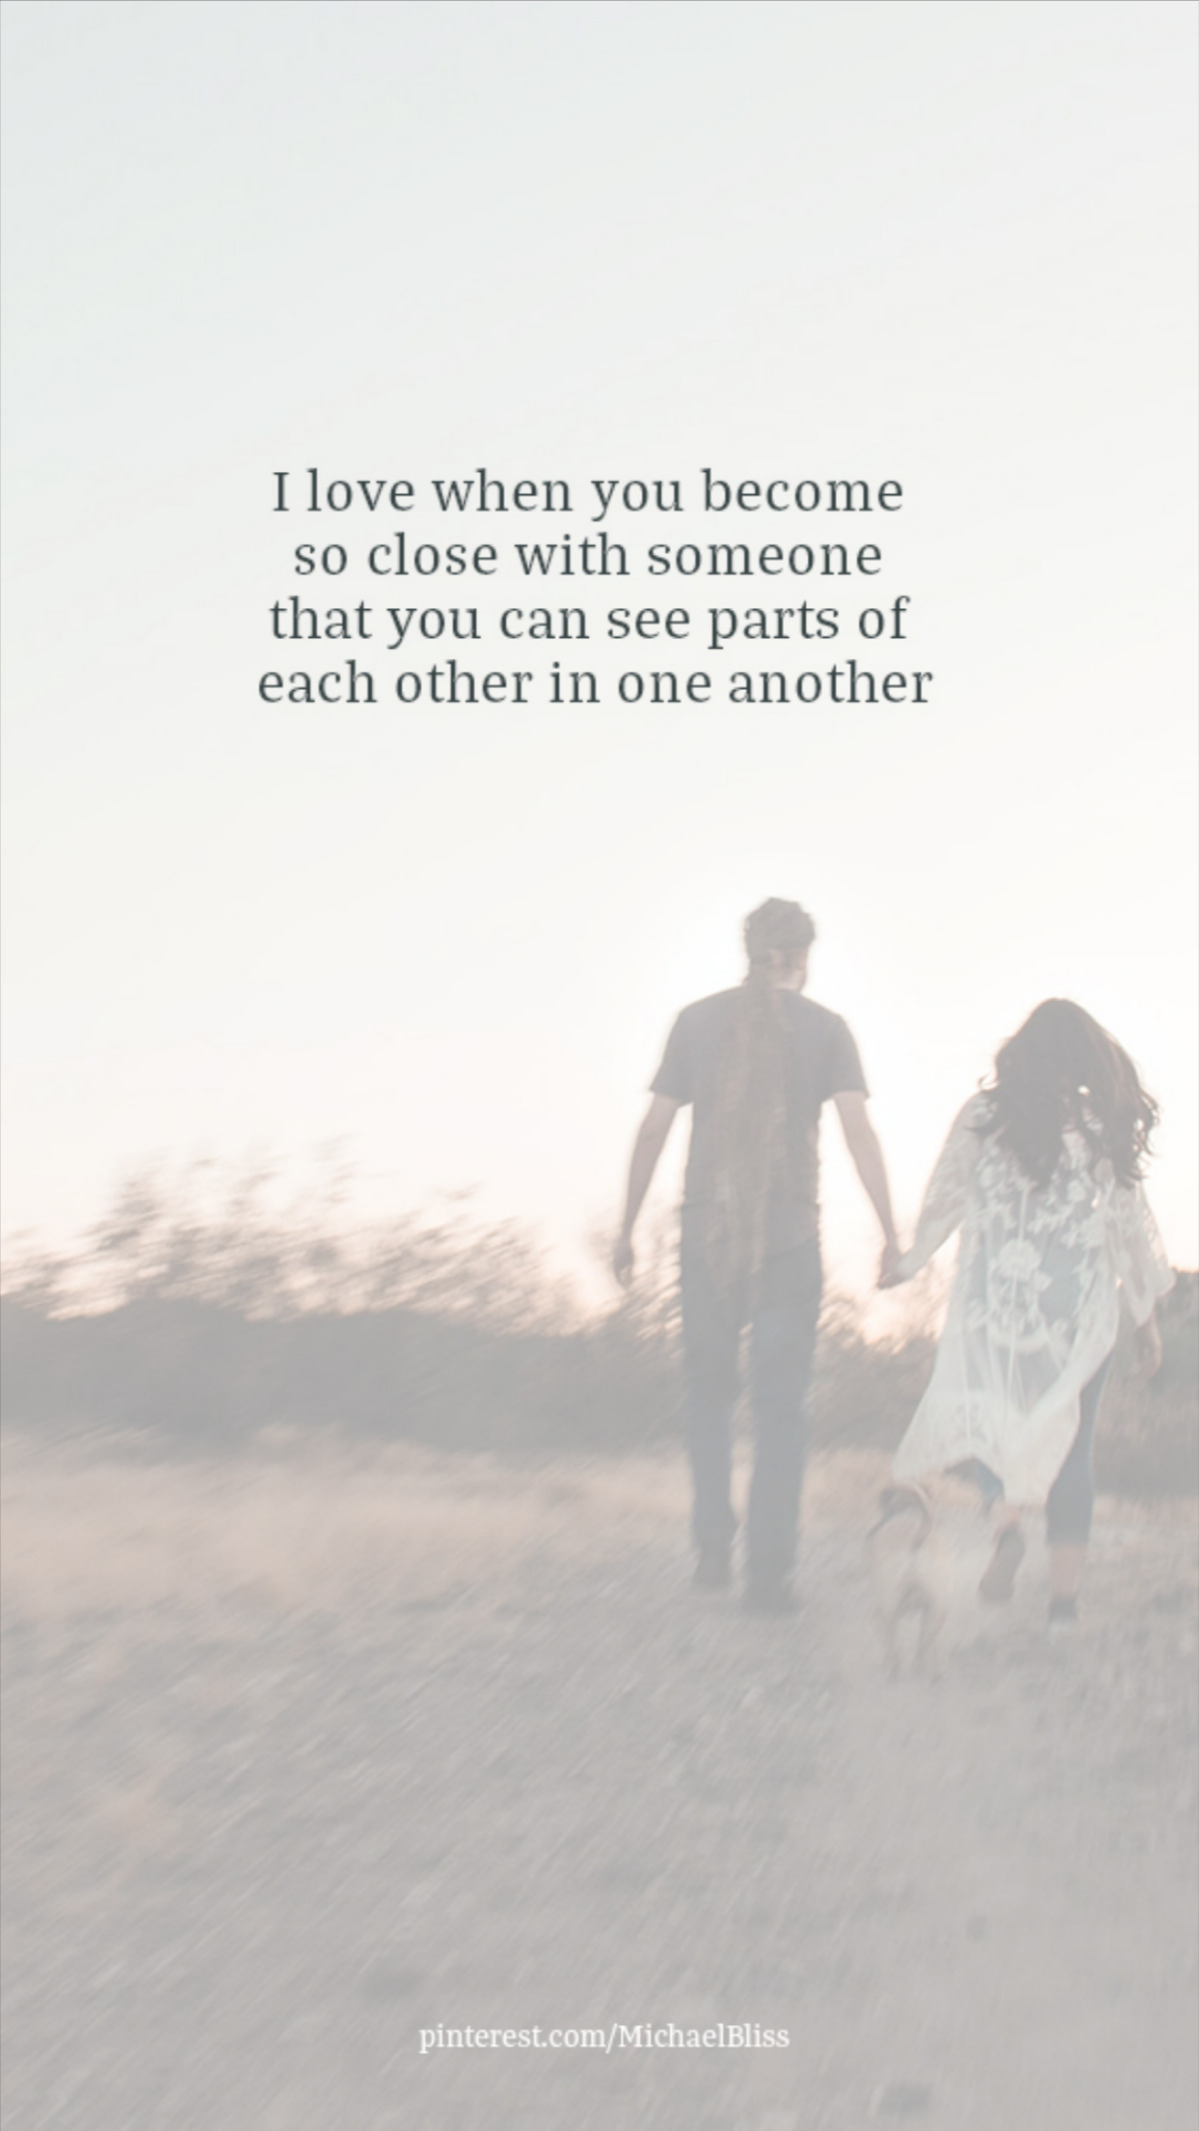 I love when you become so close with someone..